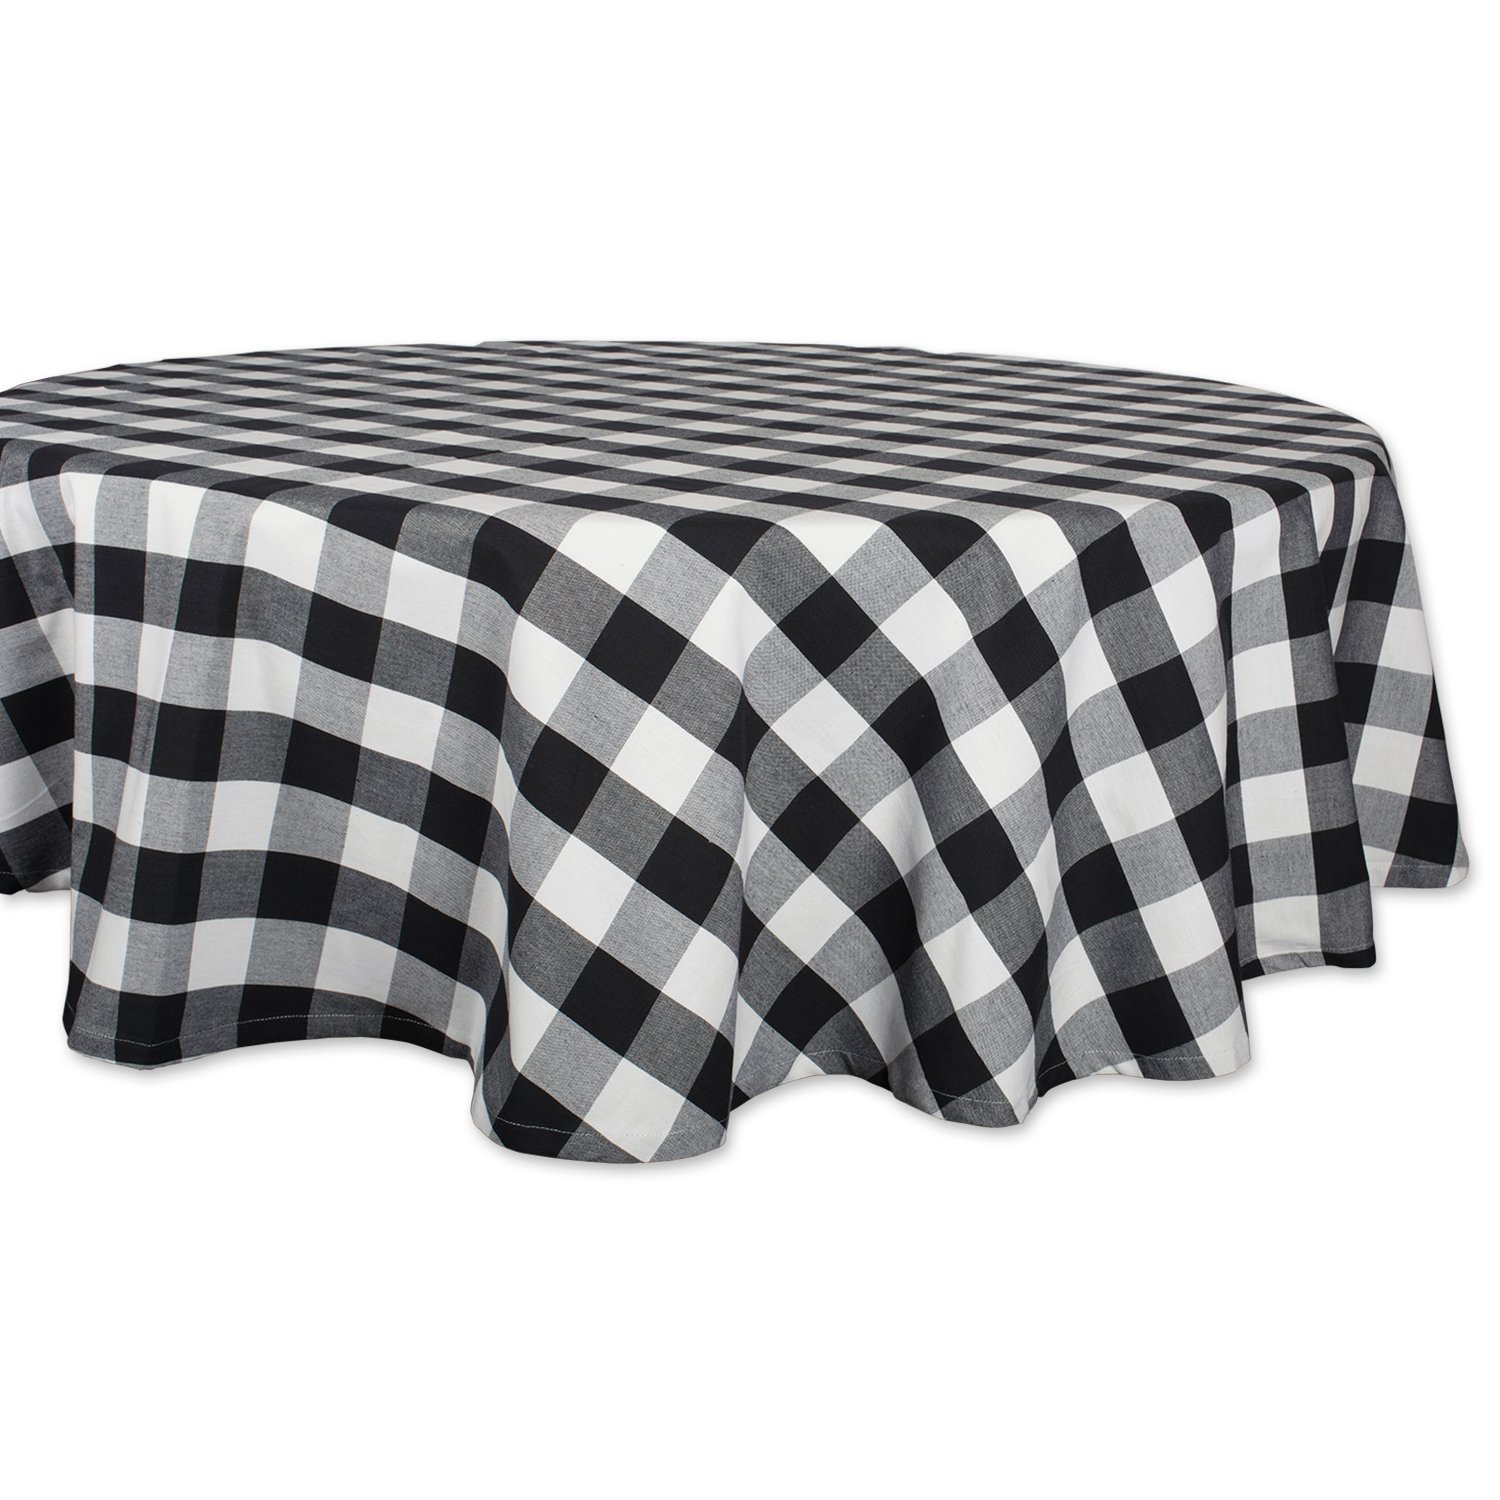 DII Cotton Buffalo Check Plaid Round Tablecloth for Family Dinners or Gatherings, Indoor or Outdoor Parties, & Everyday Use (70x70'',  Seats 4-6 People), Black & White by DII